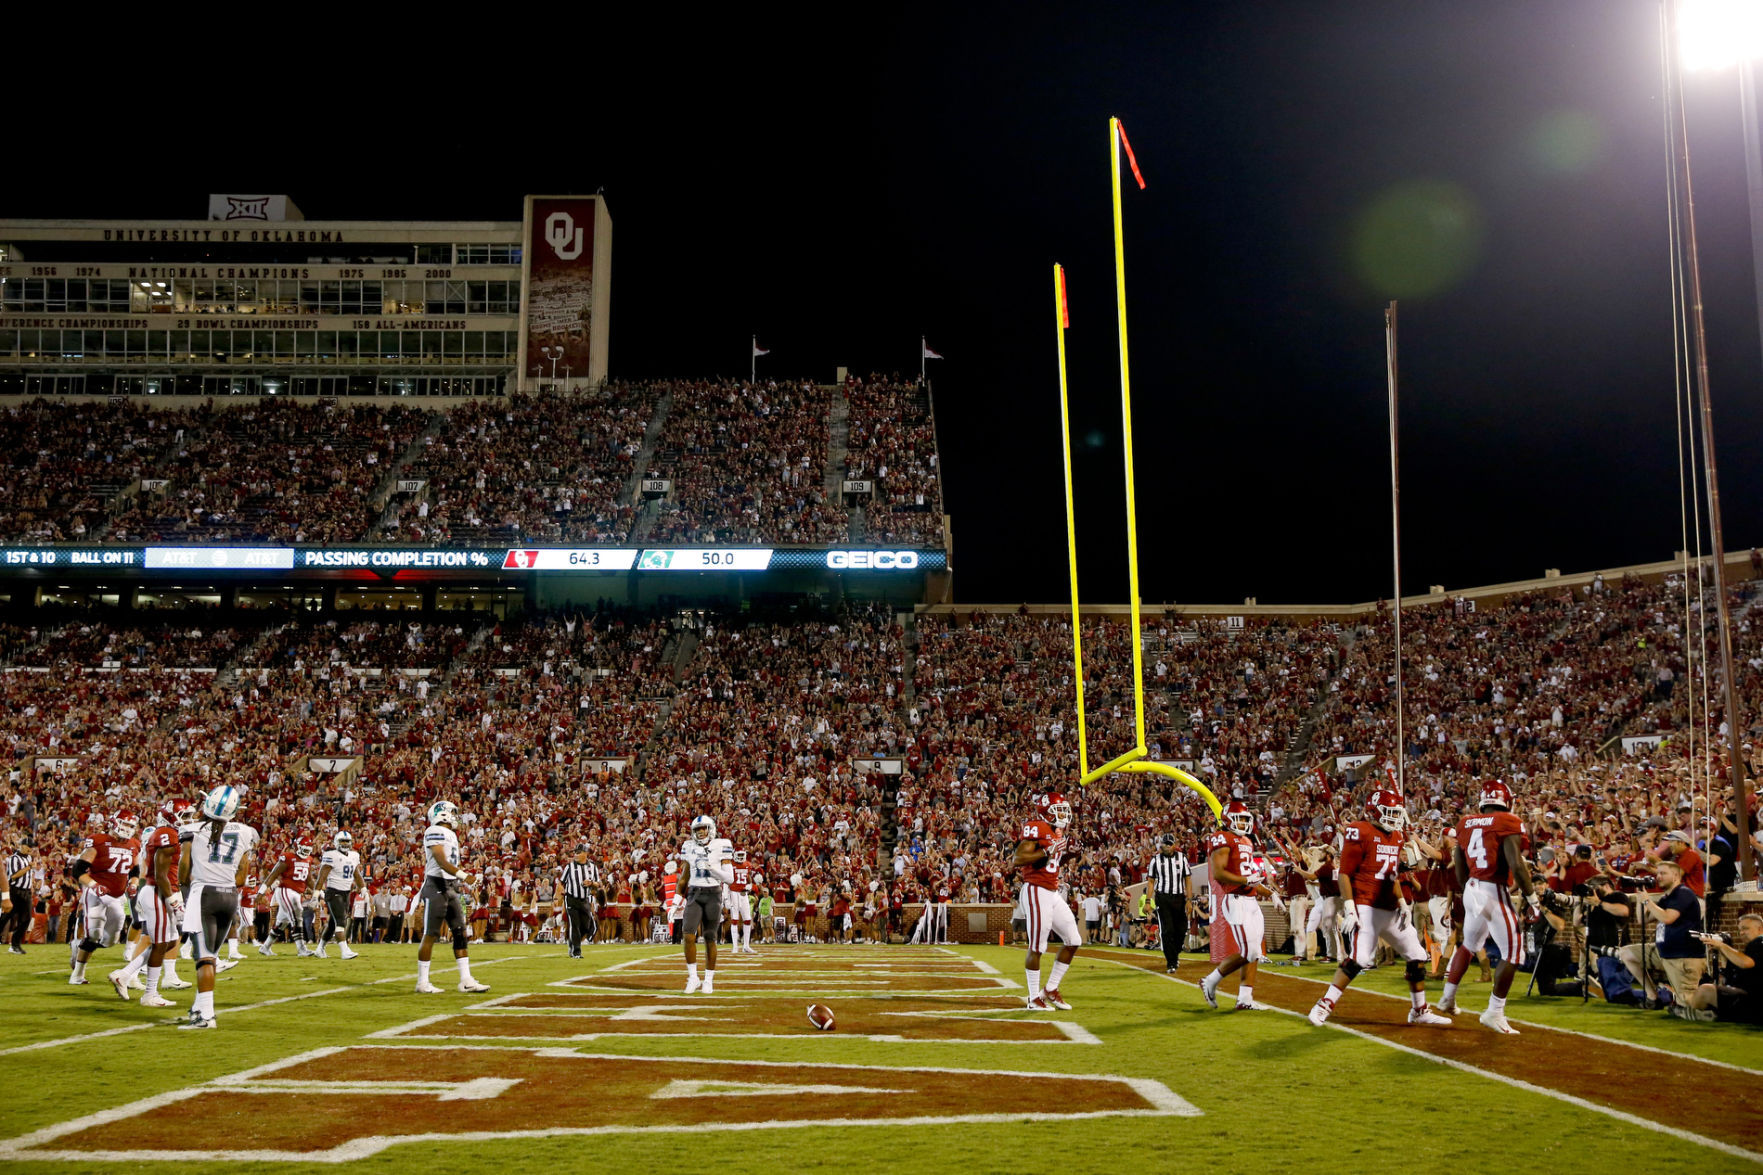 OU Football Program Ranked 3rd Most Valuable in Nation